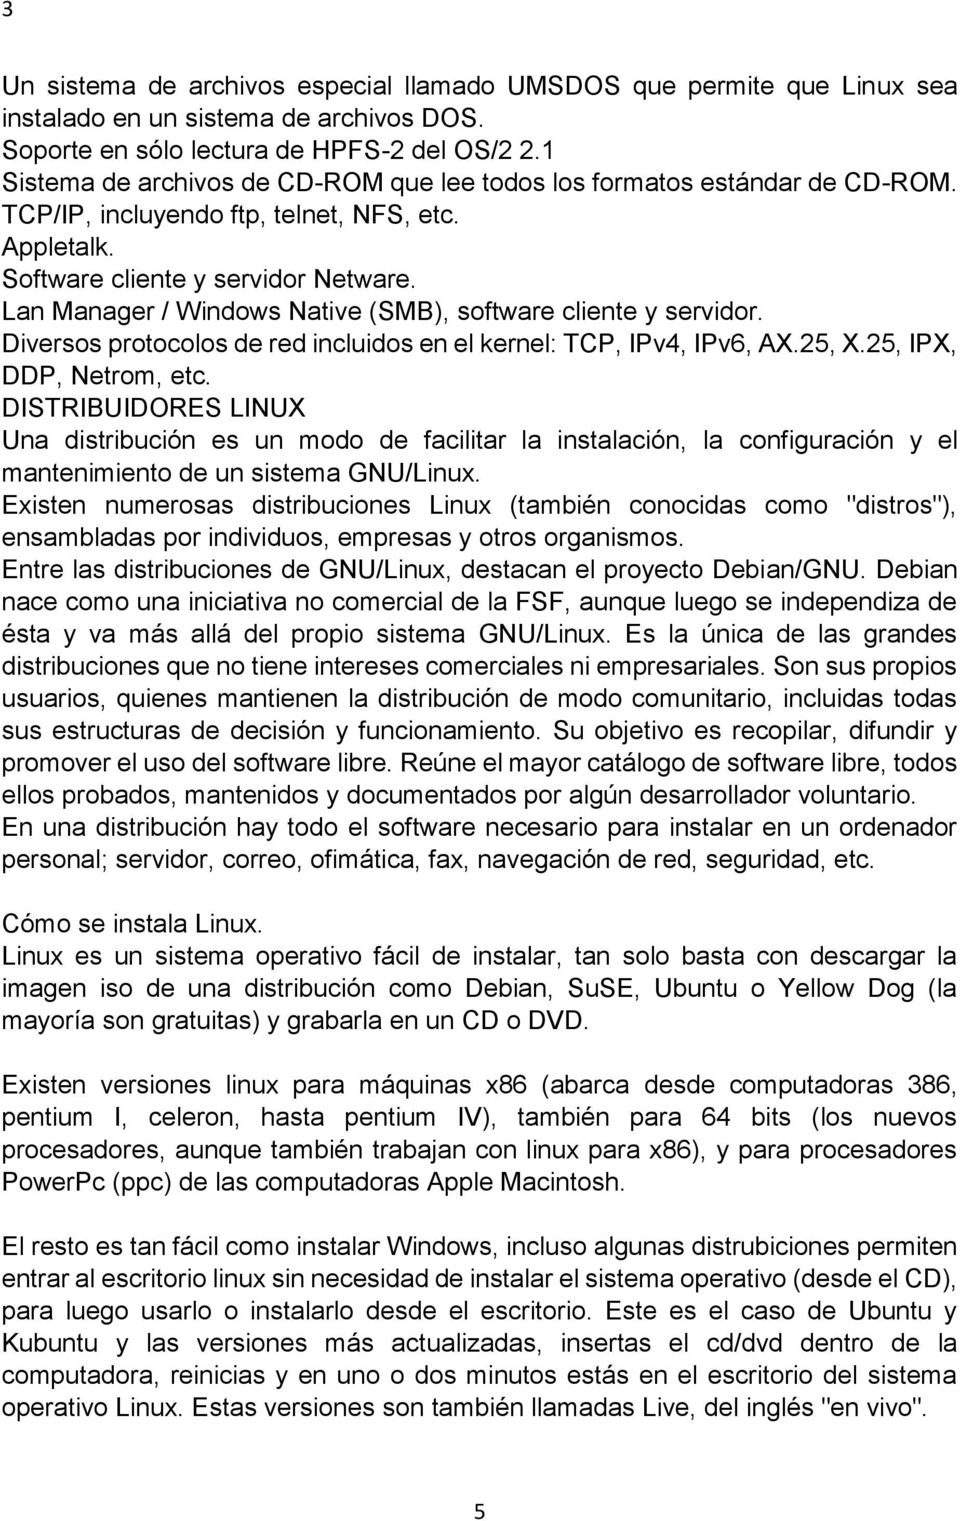 Lan Manager / Windows Native (SMB), software cliente y servidor. Diversos protocolos de red incluidos en el kernel: TCP, IPv4, IPv6, AX.25, X.25, IPX, DDP, Netrom, etc.